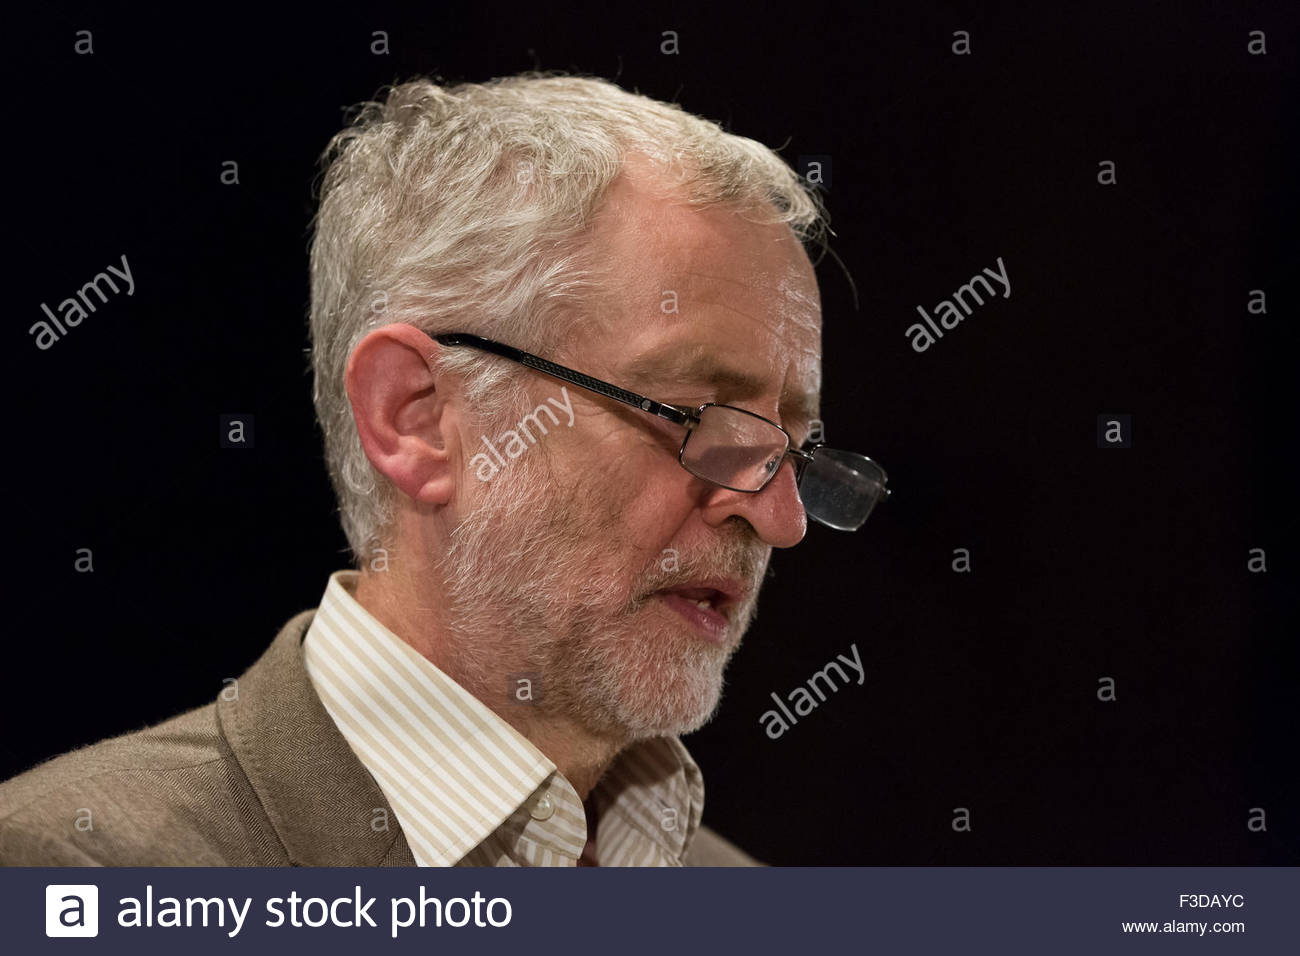 Manchester, UK. 5th October, 2015. Jeremy Crobyn, leader labour, give a speech at the Cwu, comunication worker union, - Stock Image